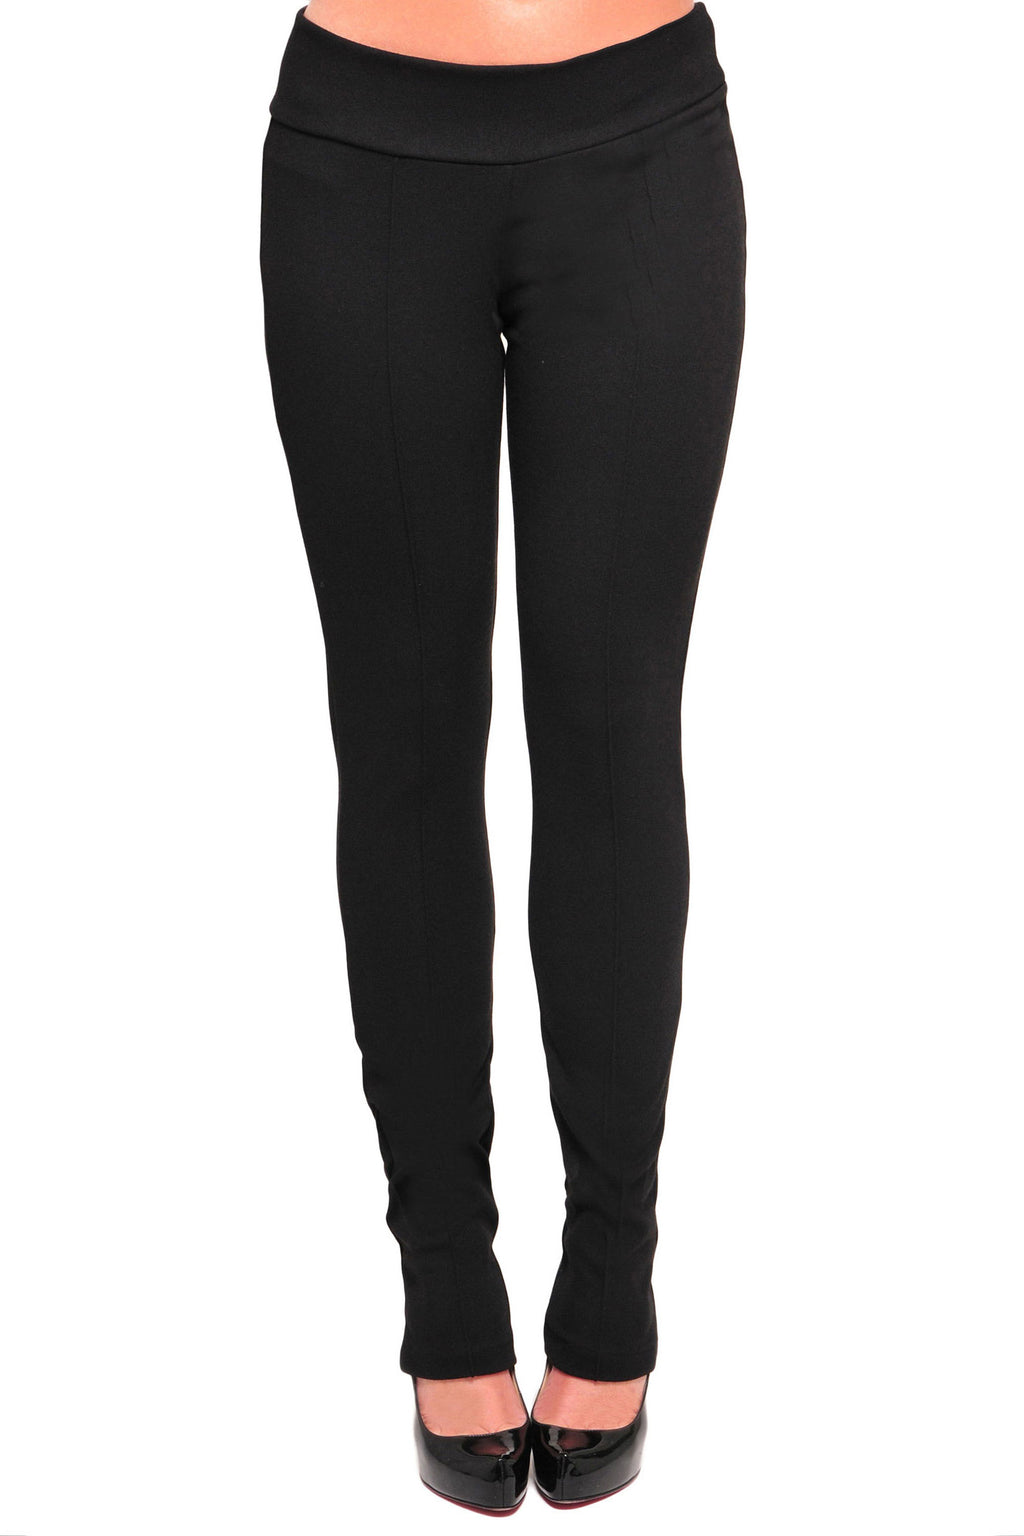 The Skinny pant by Olian